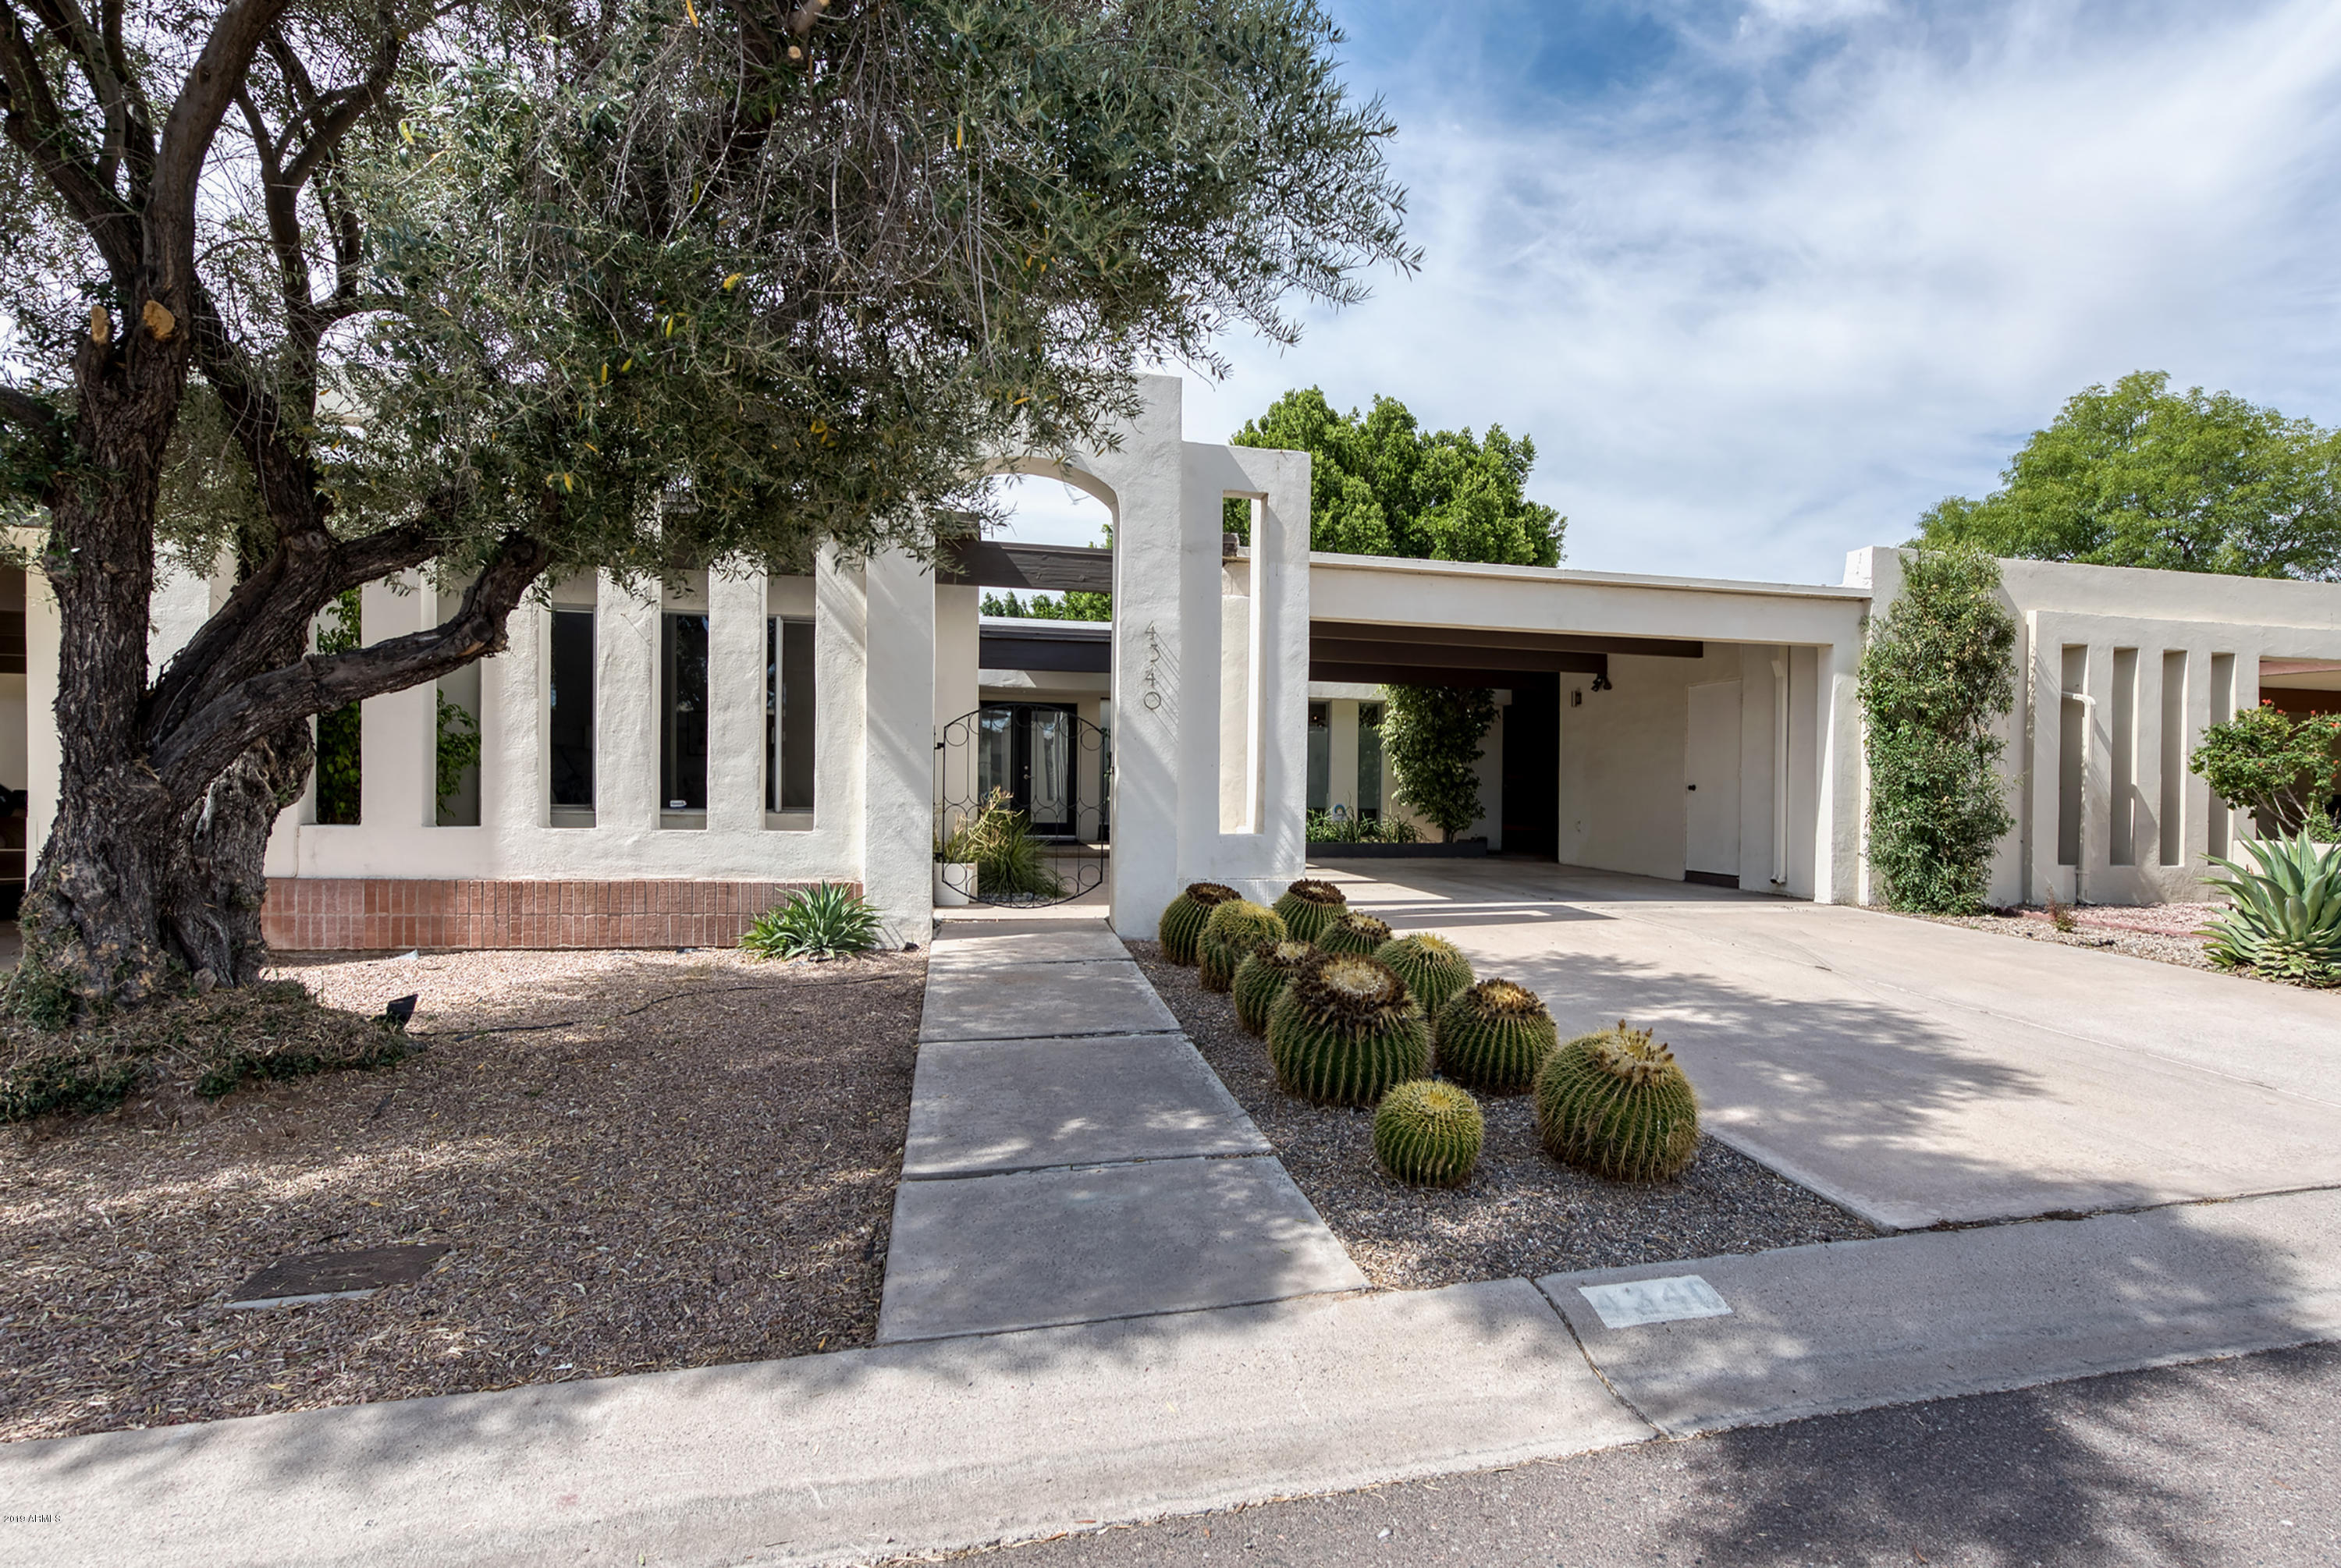 Photo of 4340 E PICCADILLY Road, Phoenix, AZ 85018